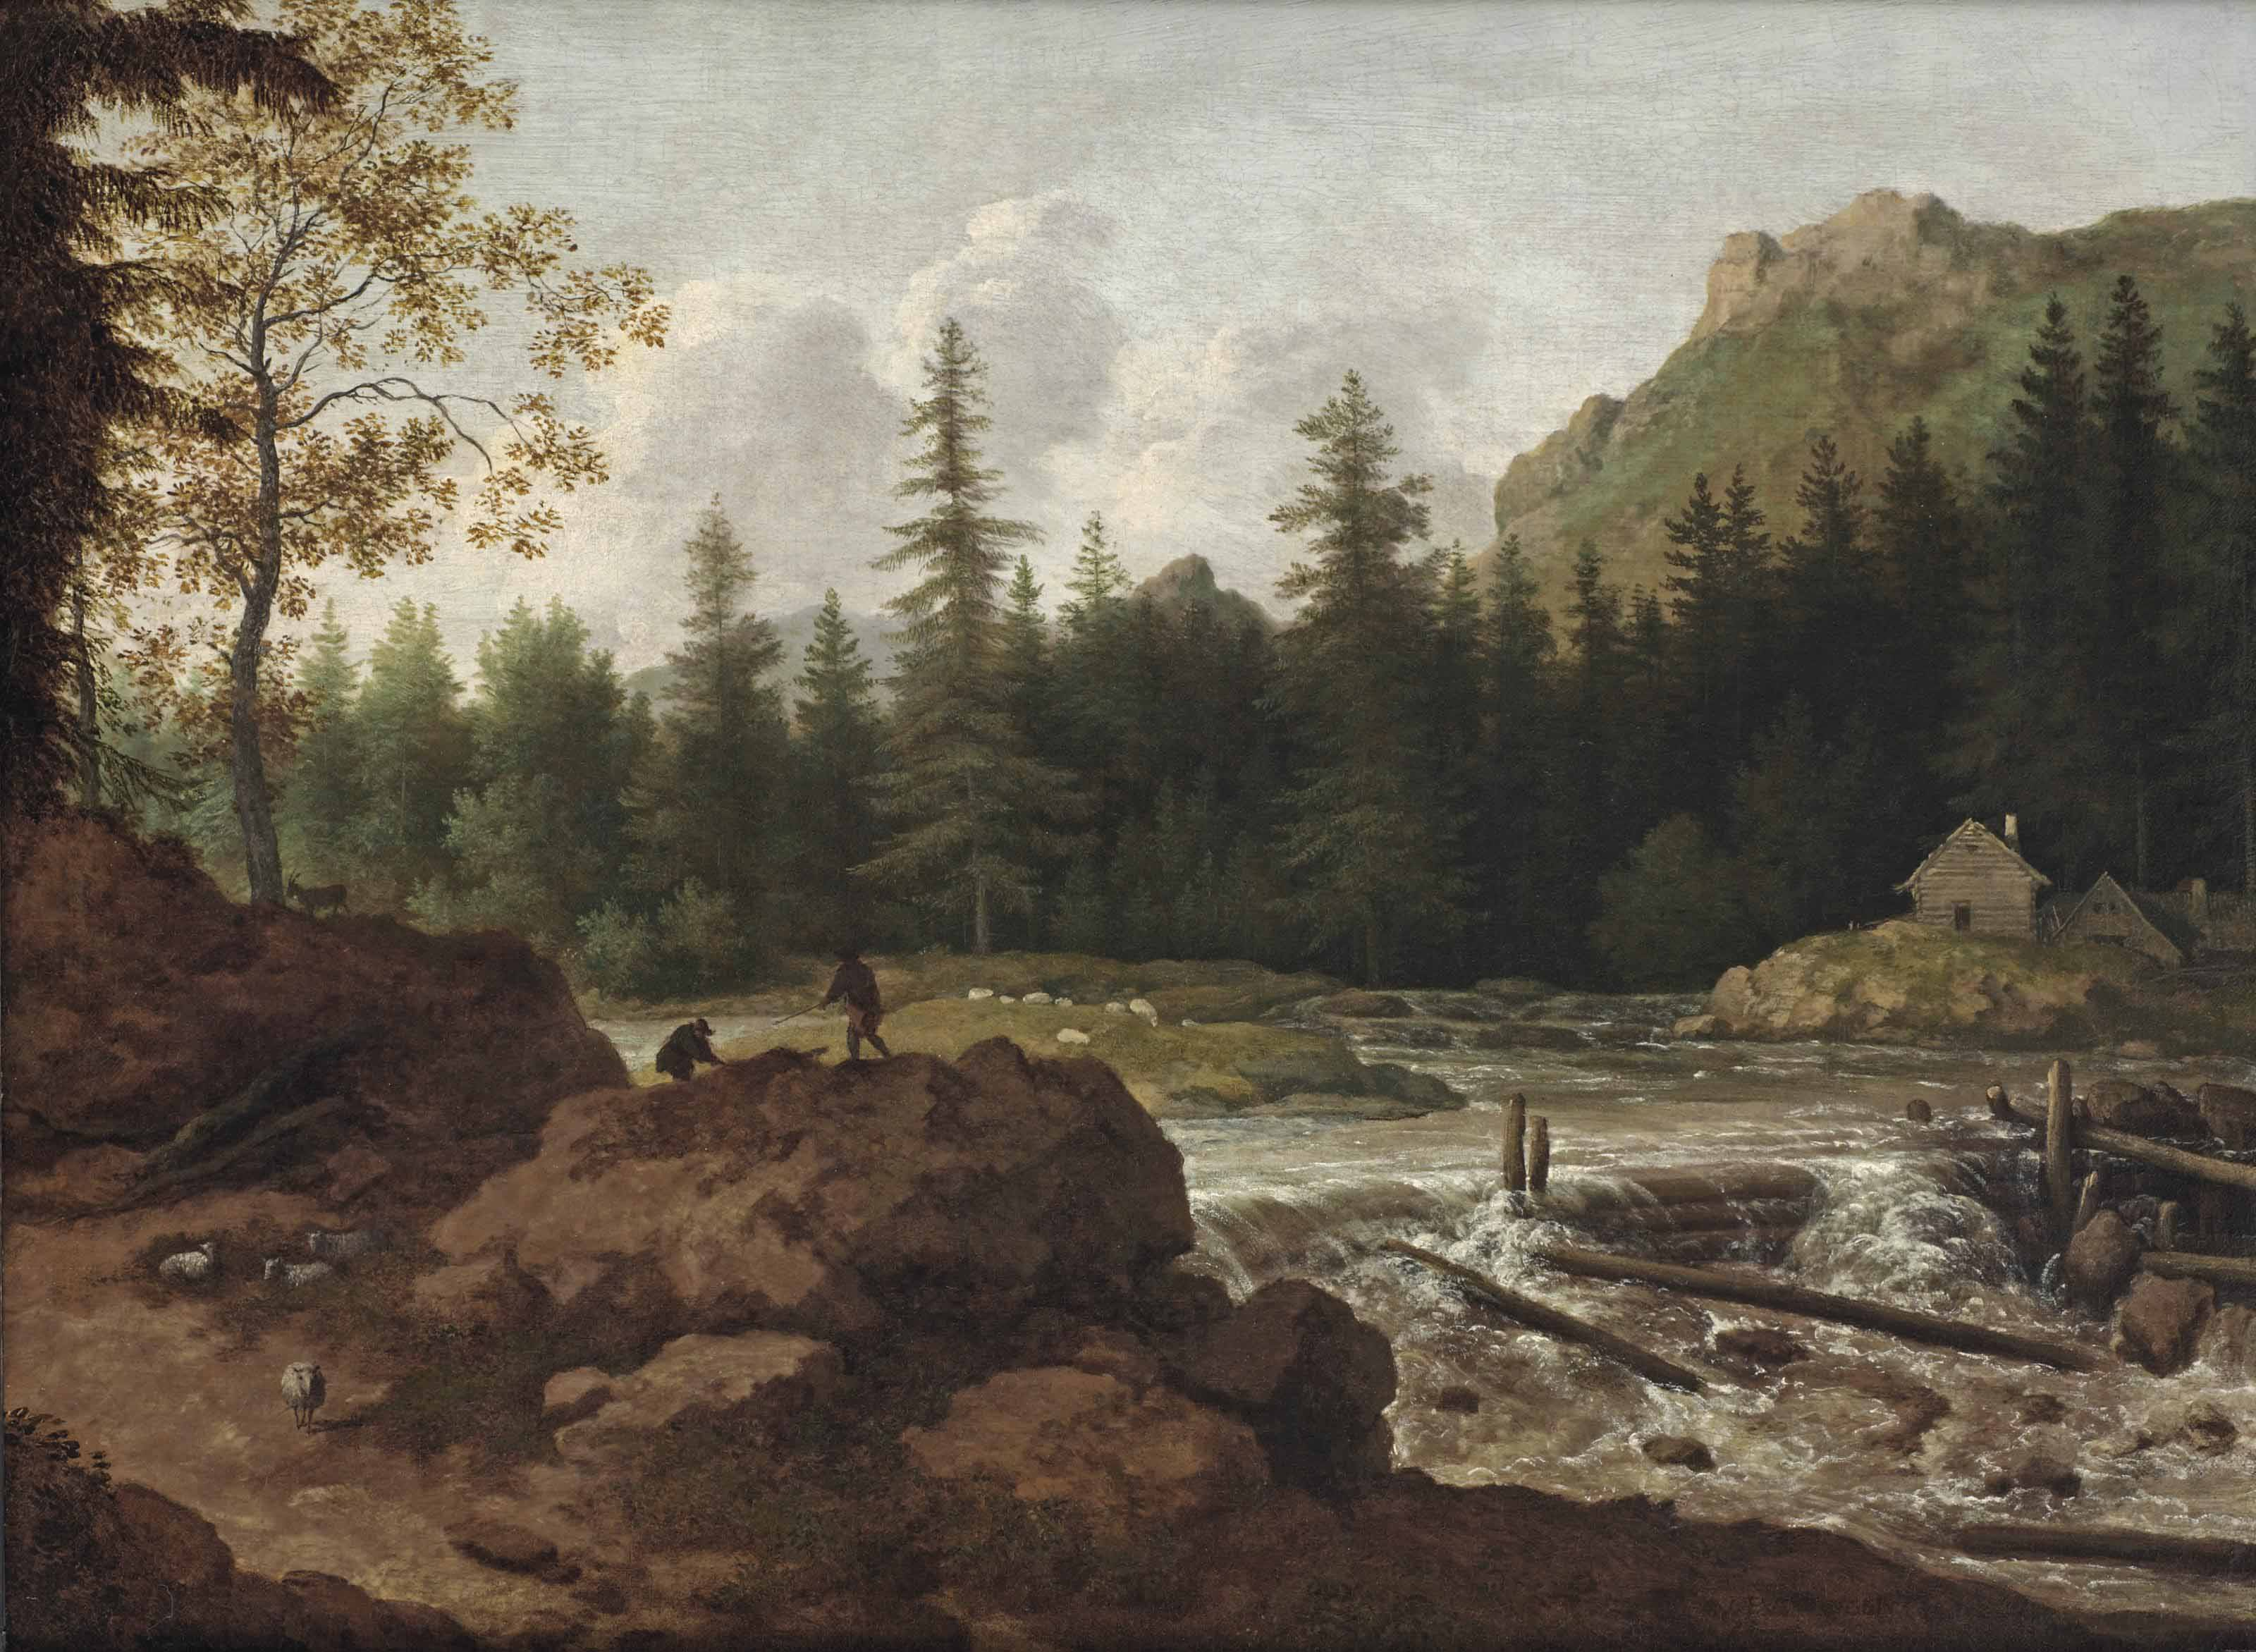 A Scandinavian river landscape with herdsmen on a rock by a waterfall